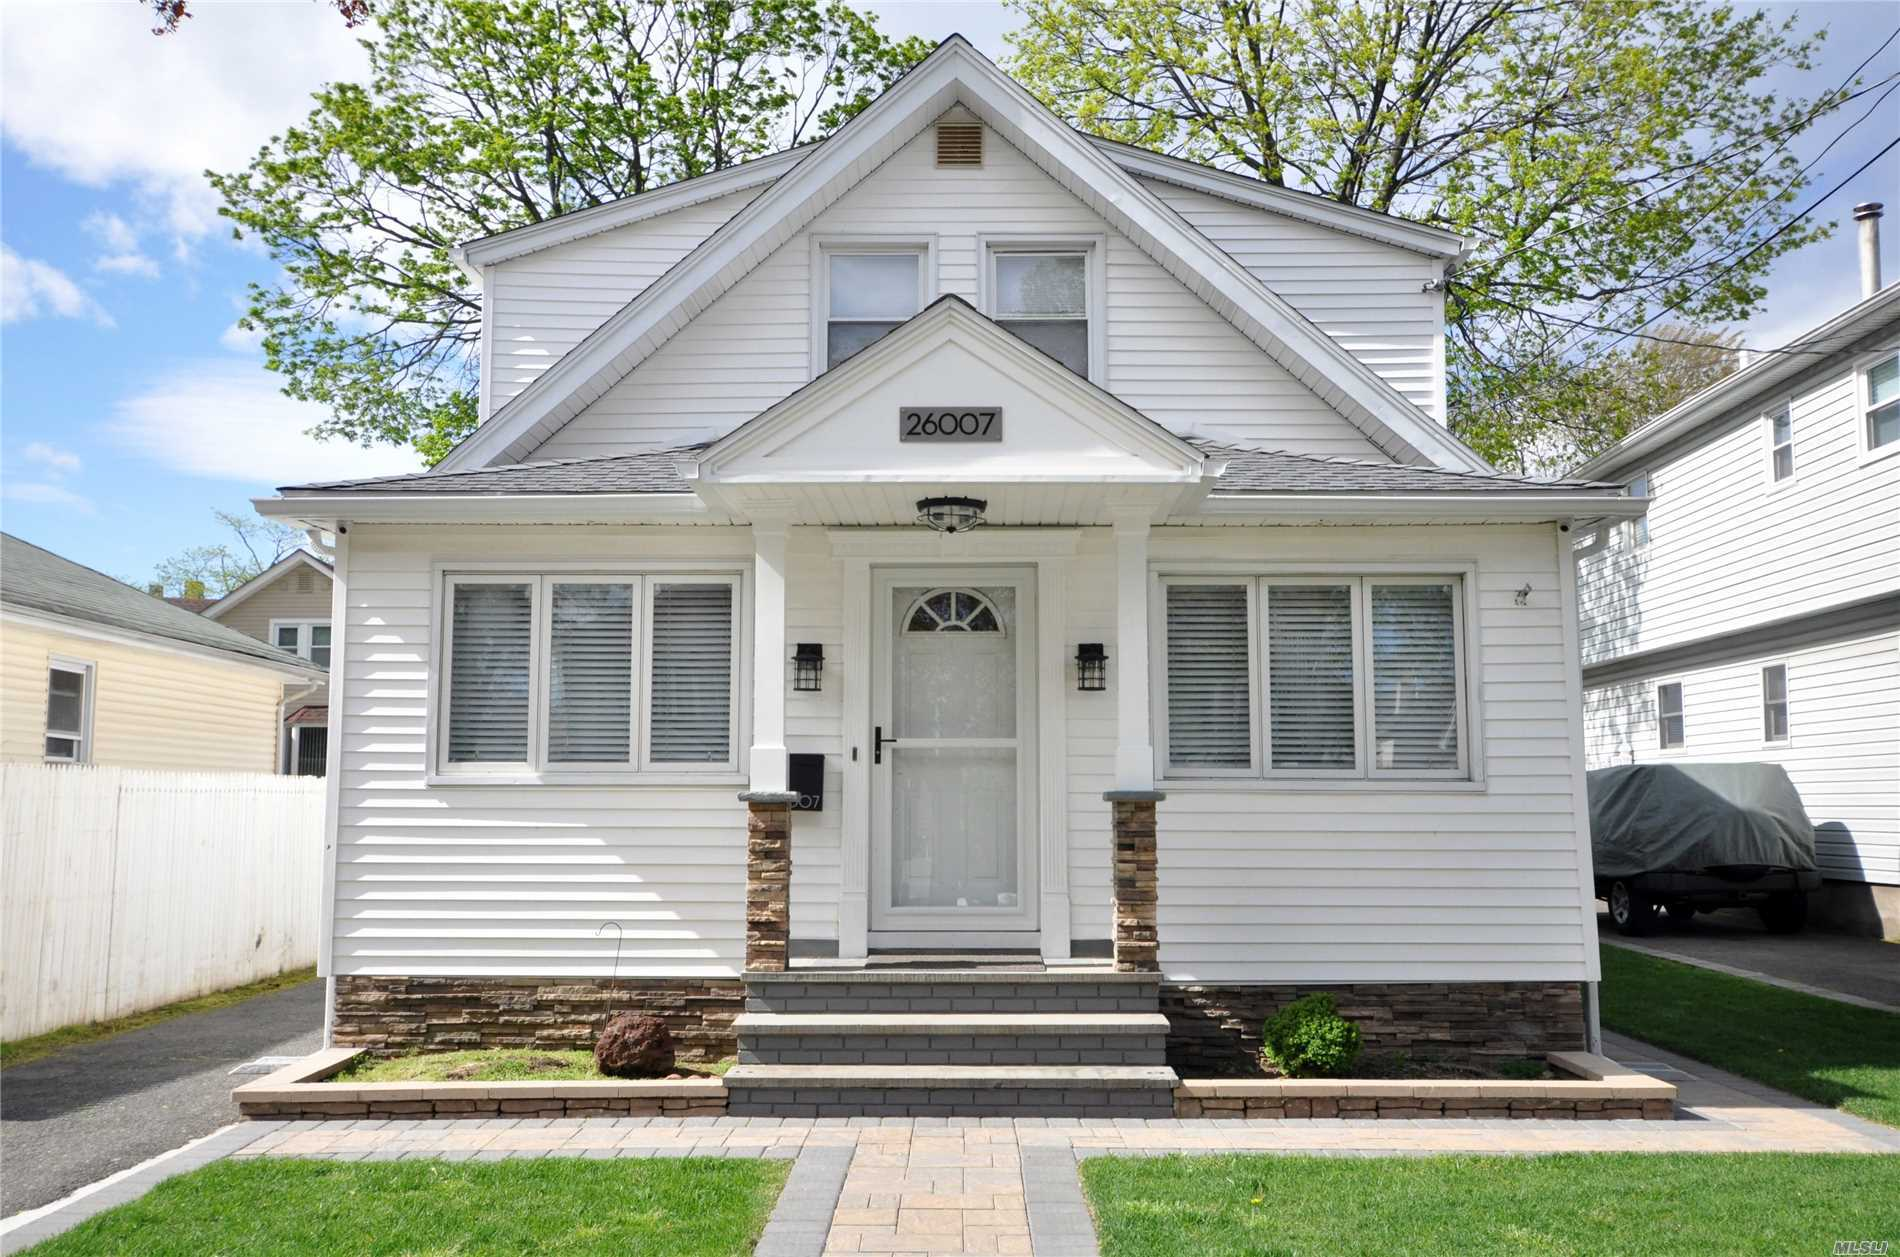 Property for sale at 260-07 E Williston Avenue, Floral Park NY 11001, Floral Park,  New York 11001